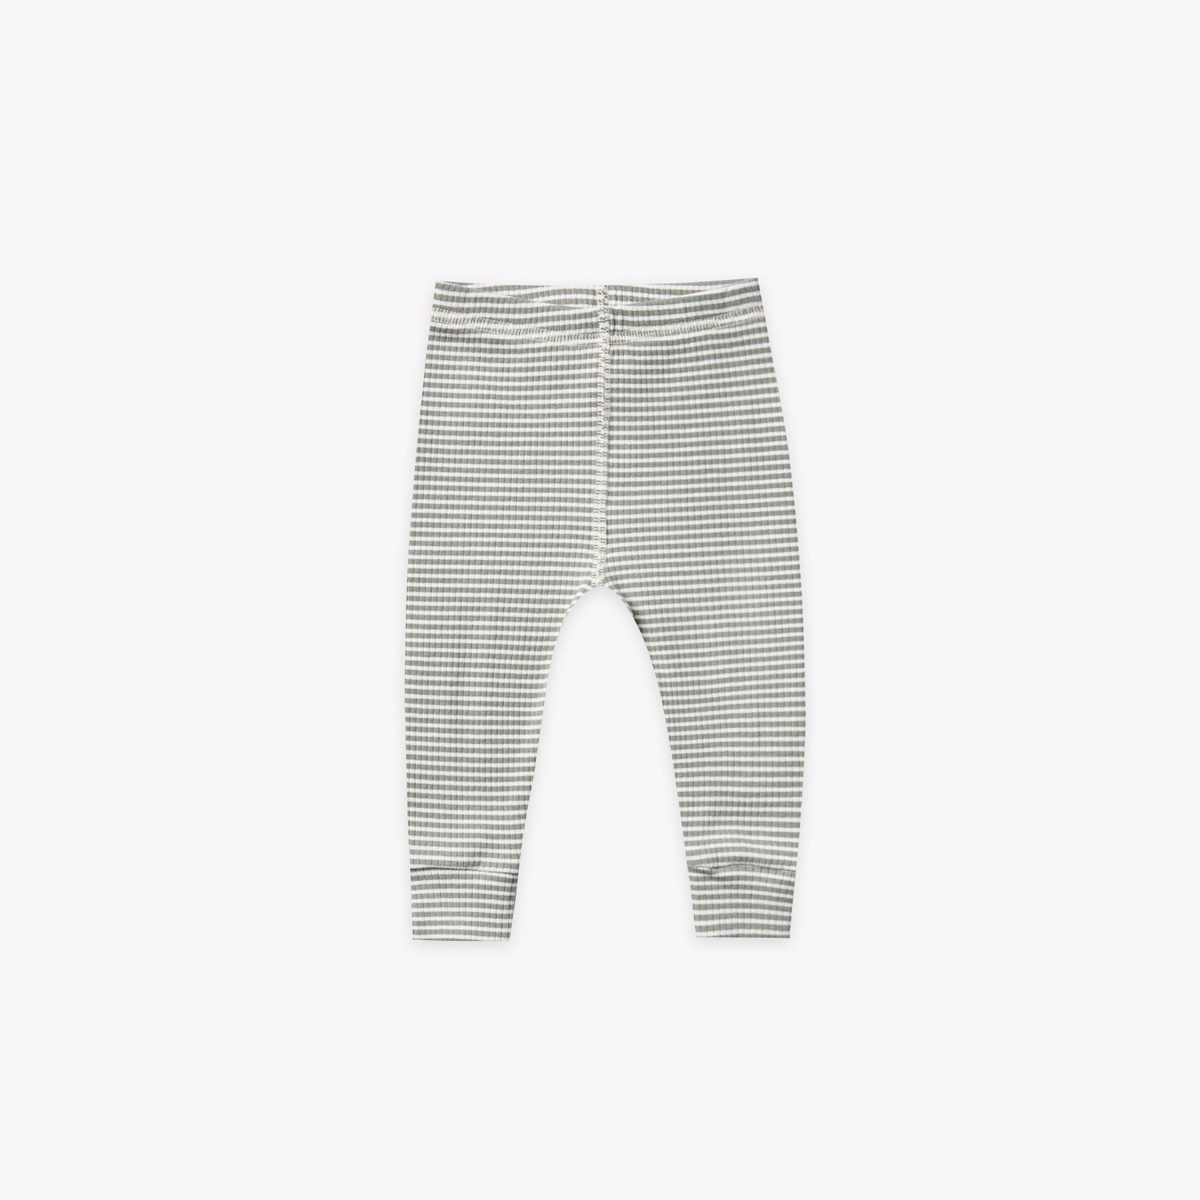 Quincy Mae - QM Quincy Mae - Ribbed Legging in Eucalyptus Stripe